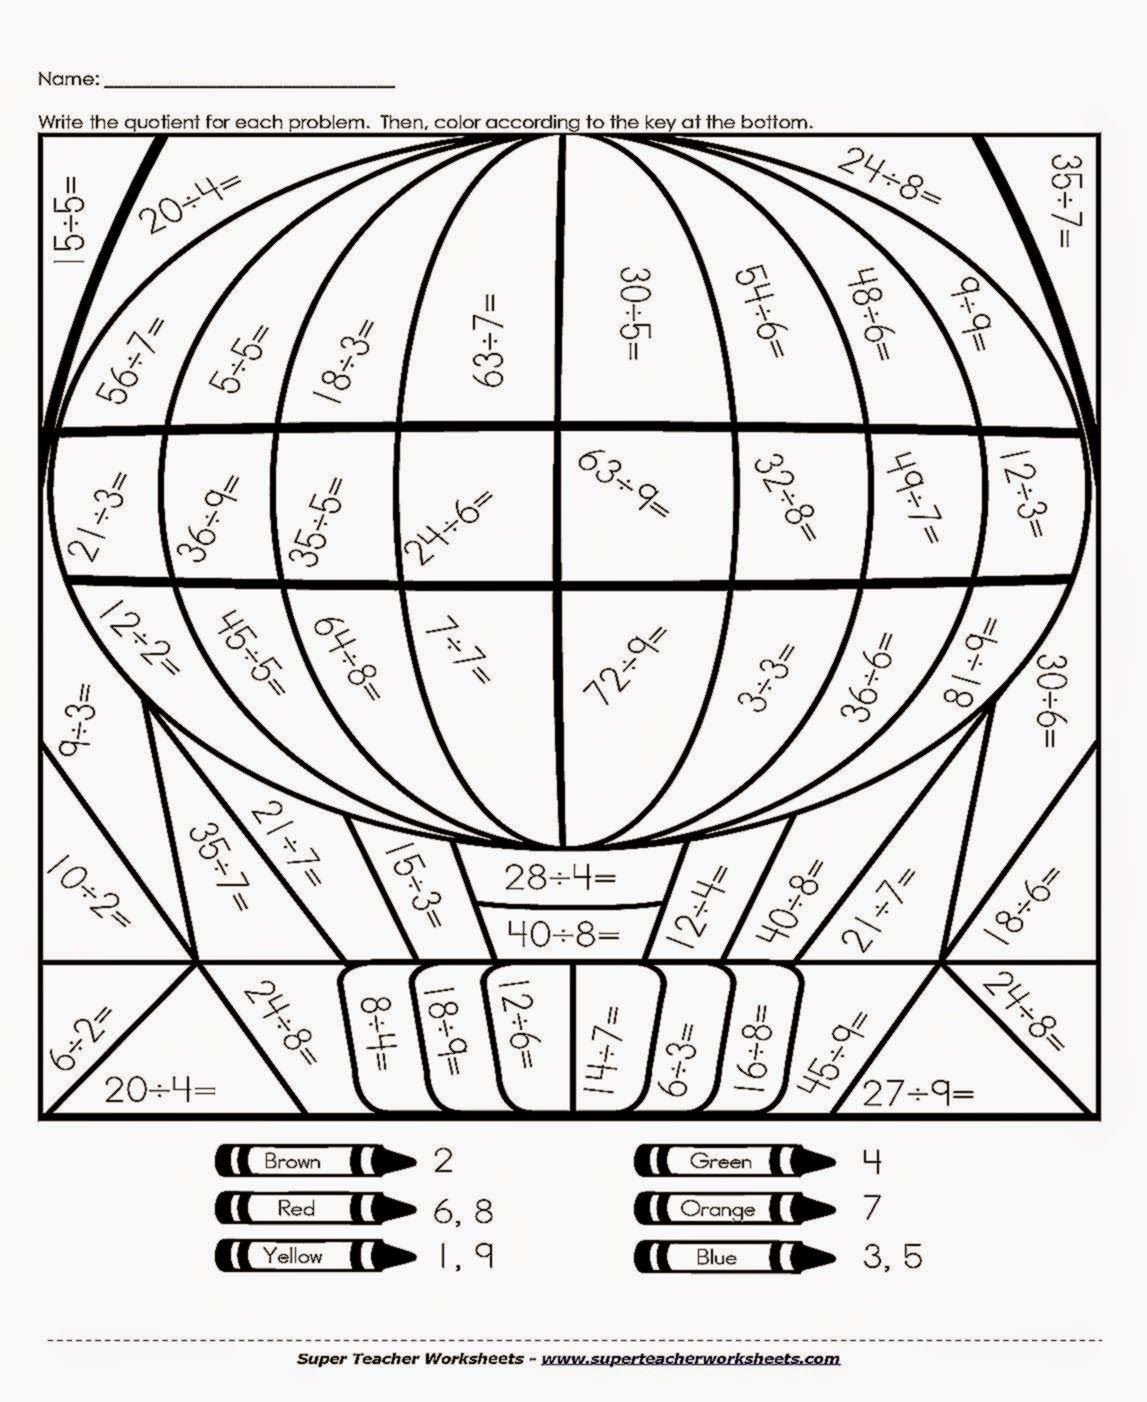 Division Coloring Worksheets Image Result for Division Coloring Puzzles